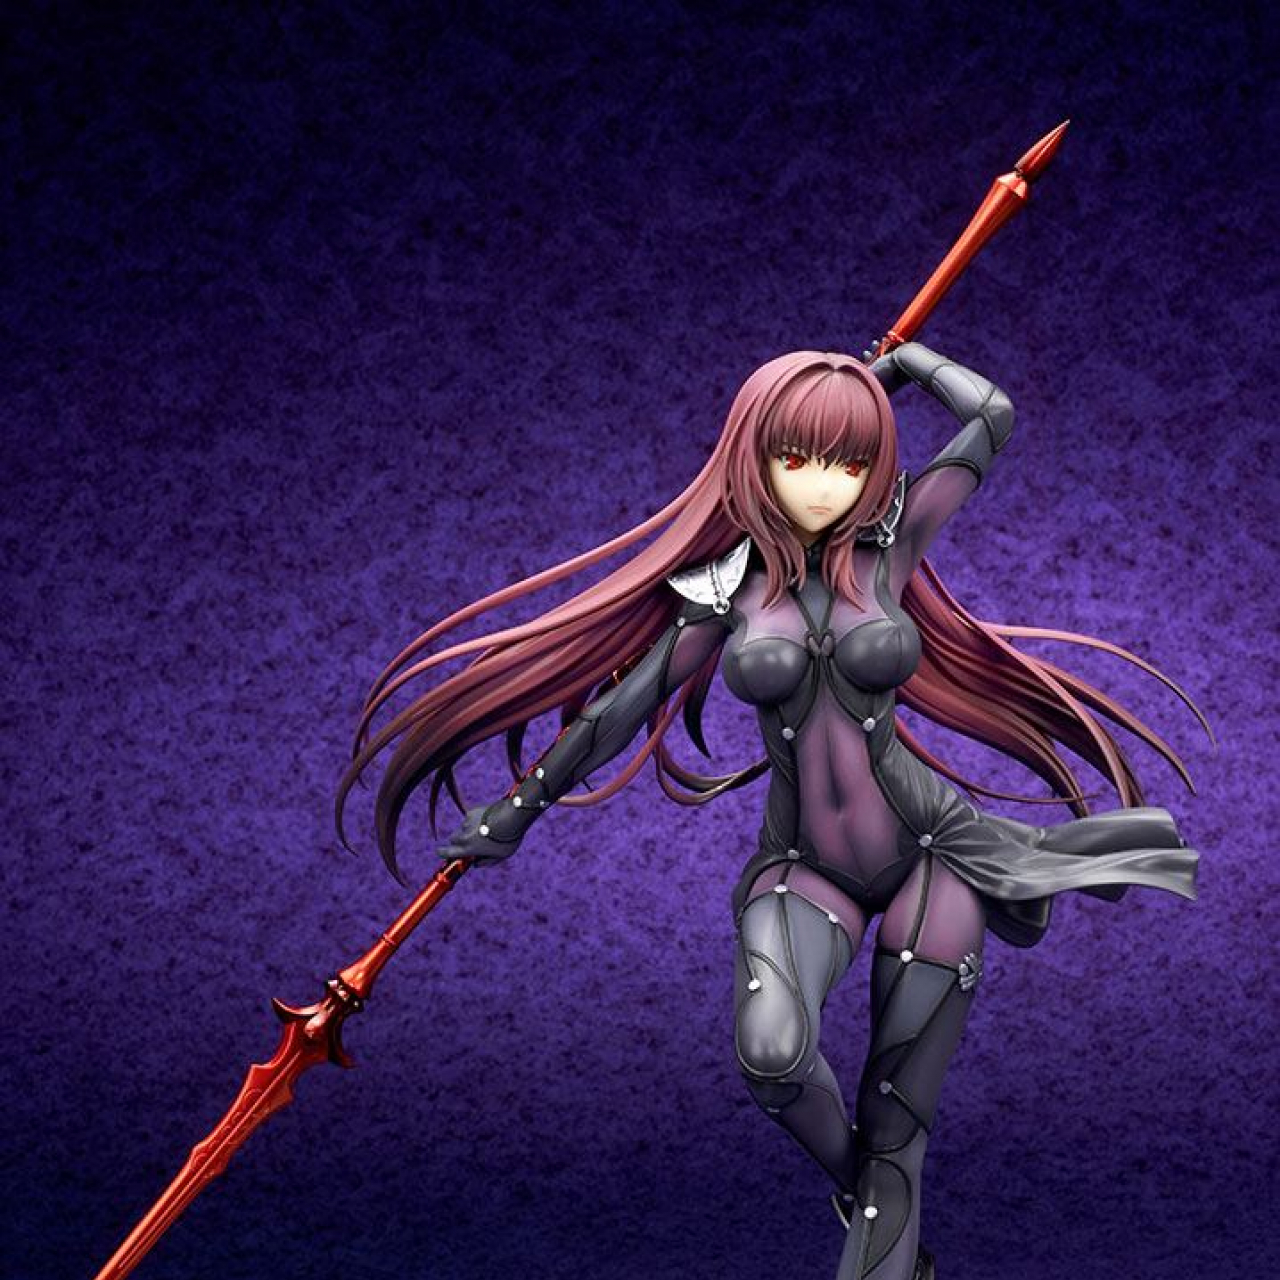 Fate/Grand Order PVC Statue 1/7 Lancer Scathach 24 cm